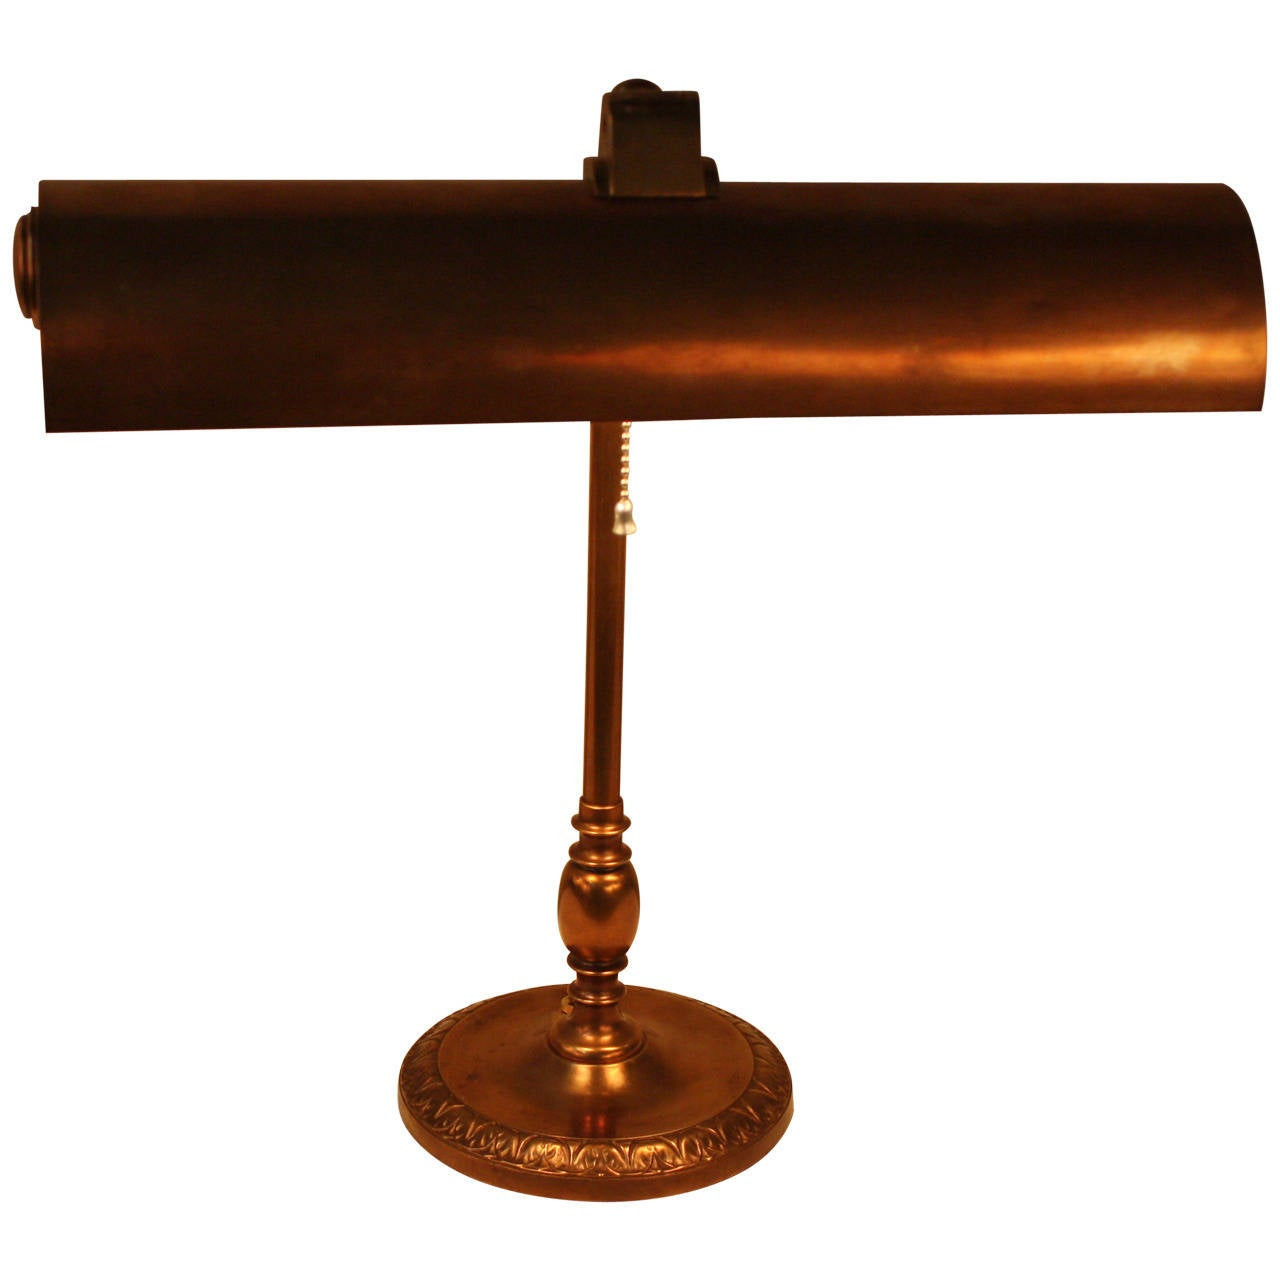 Best ideas about Bronze Desk Lamp . Save or Pin I P Frink Bronze Desk Lamp at 1stdibs Now.